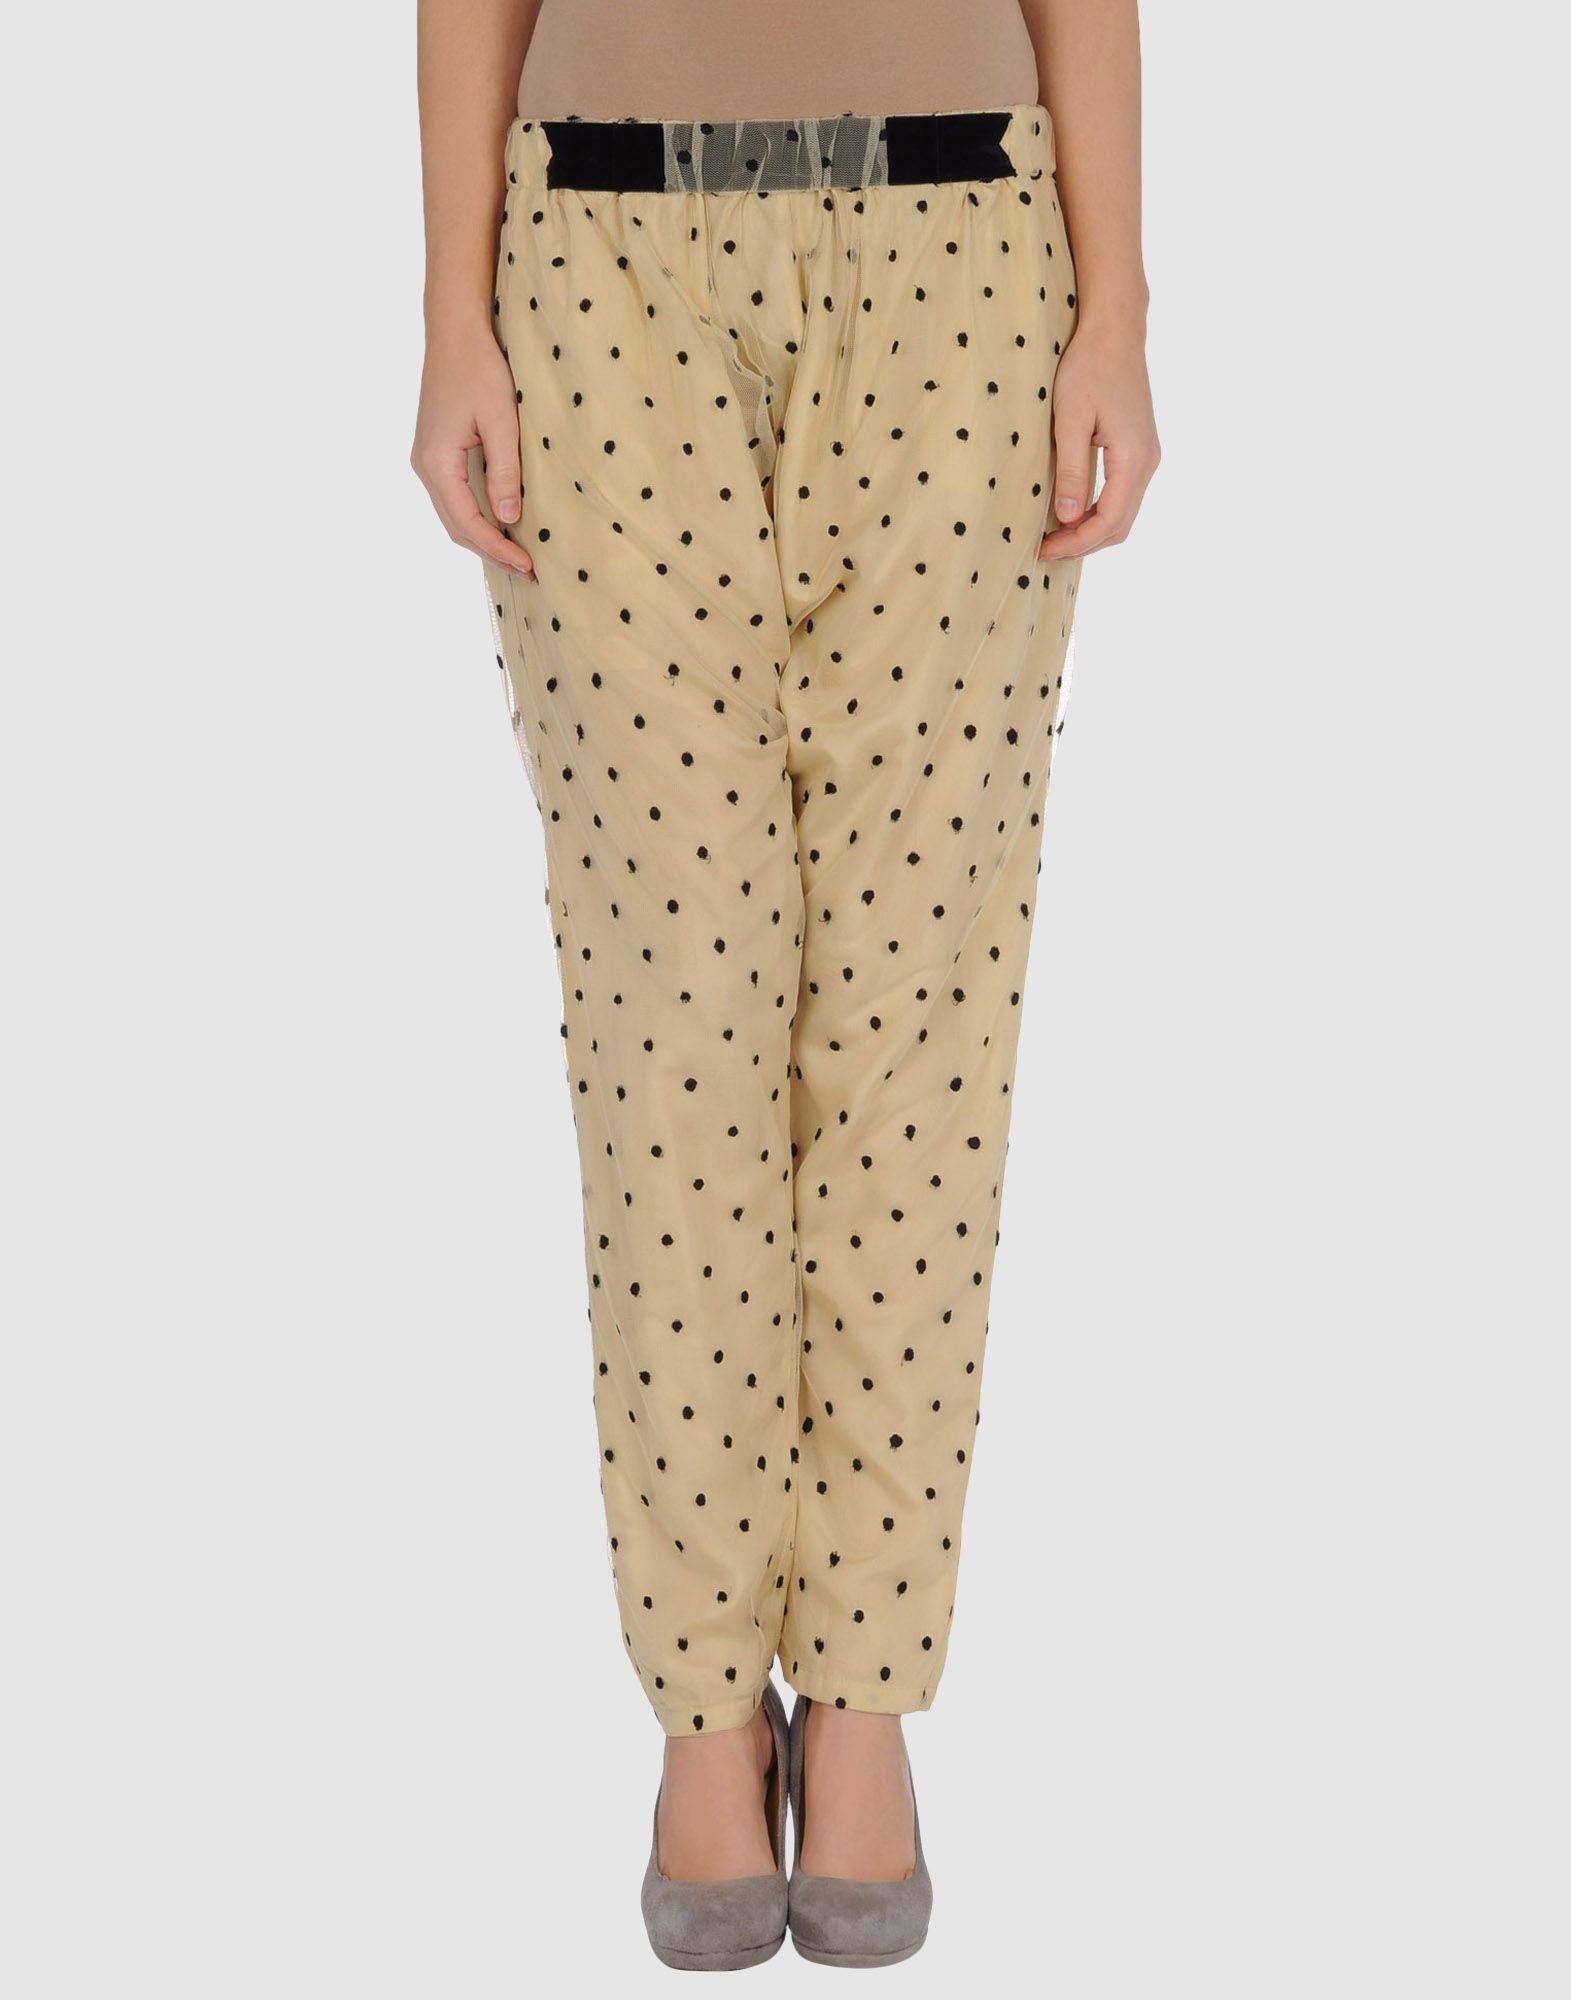 Dotted silk pants from Manoush. For those summer nights in the garden.